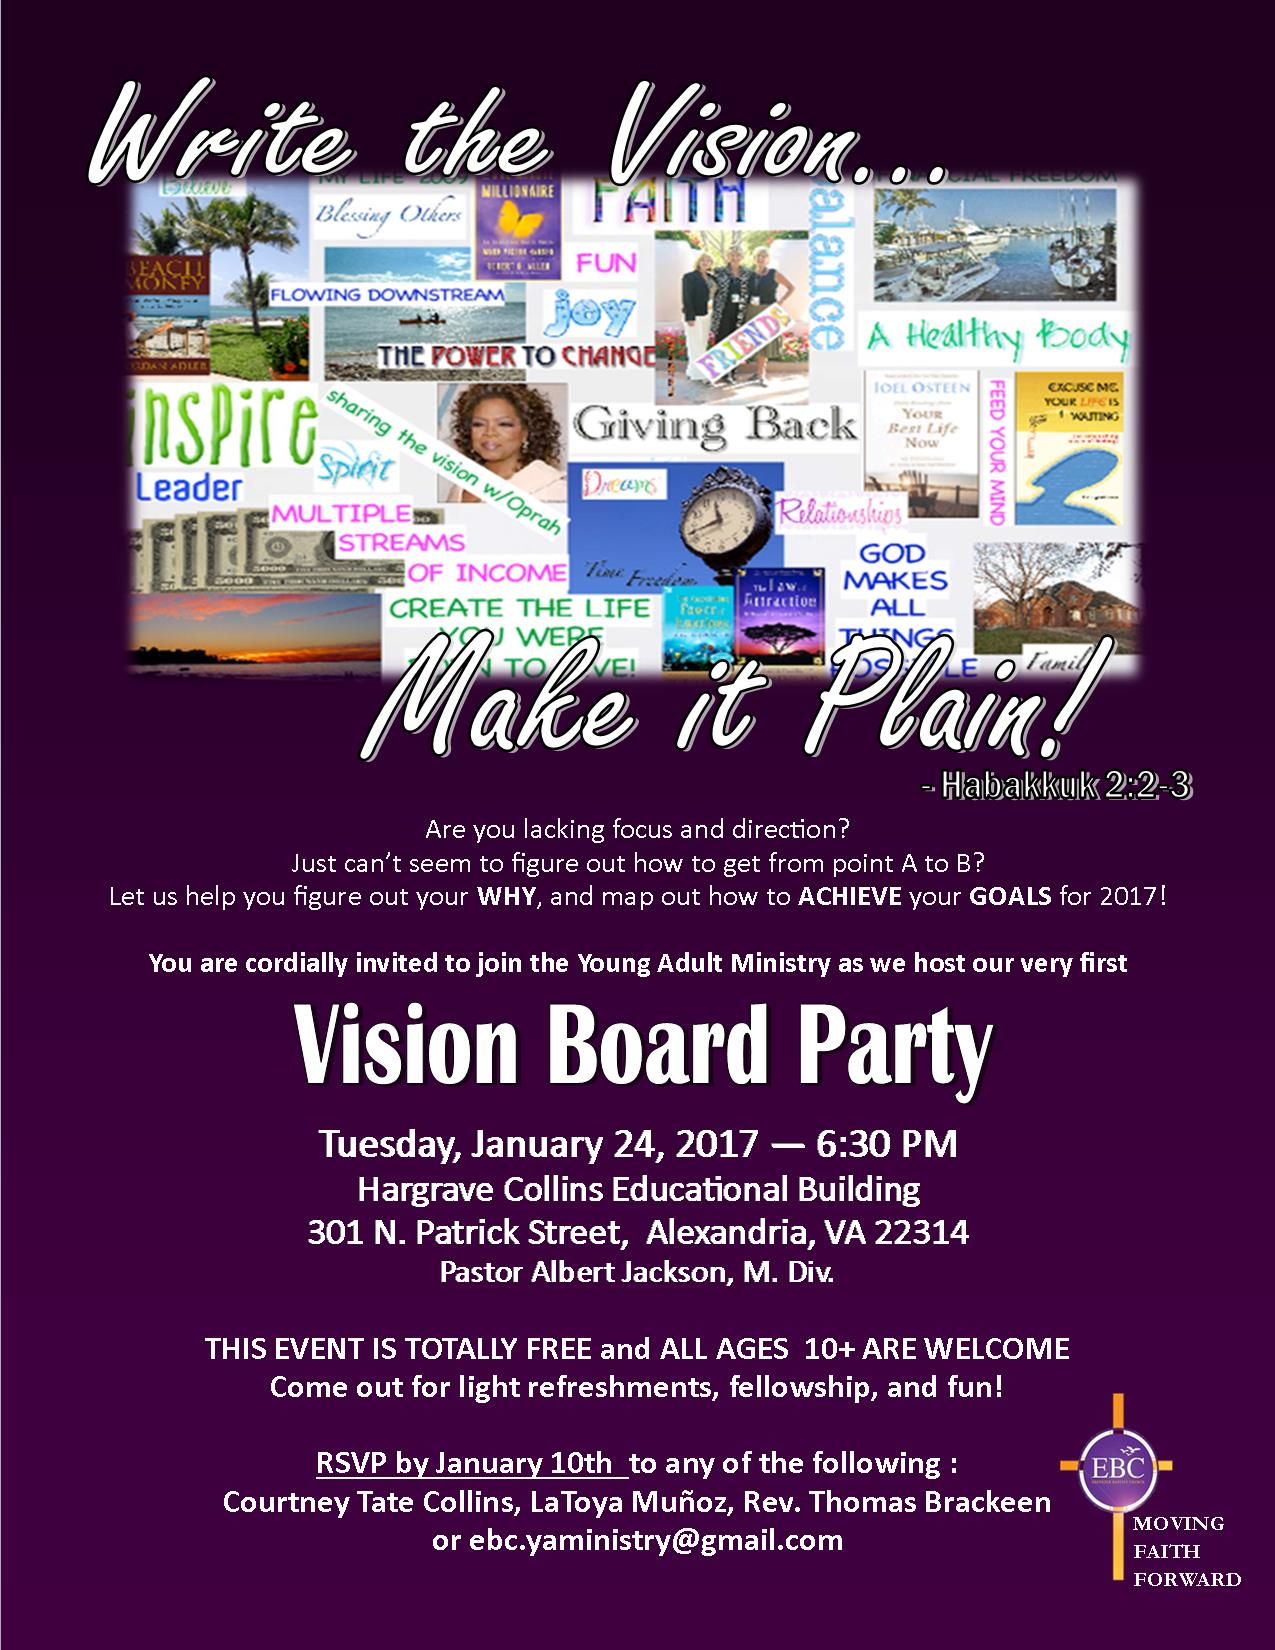 Not Your Average VISION BOARD PARTY! - 6 JAN 2019 |Events Vision Board